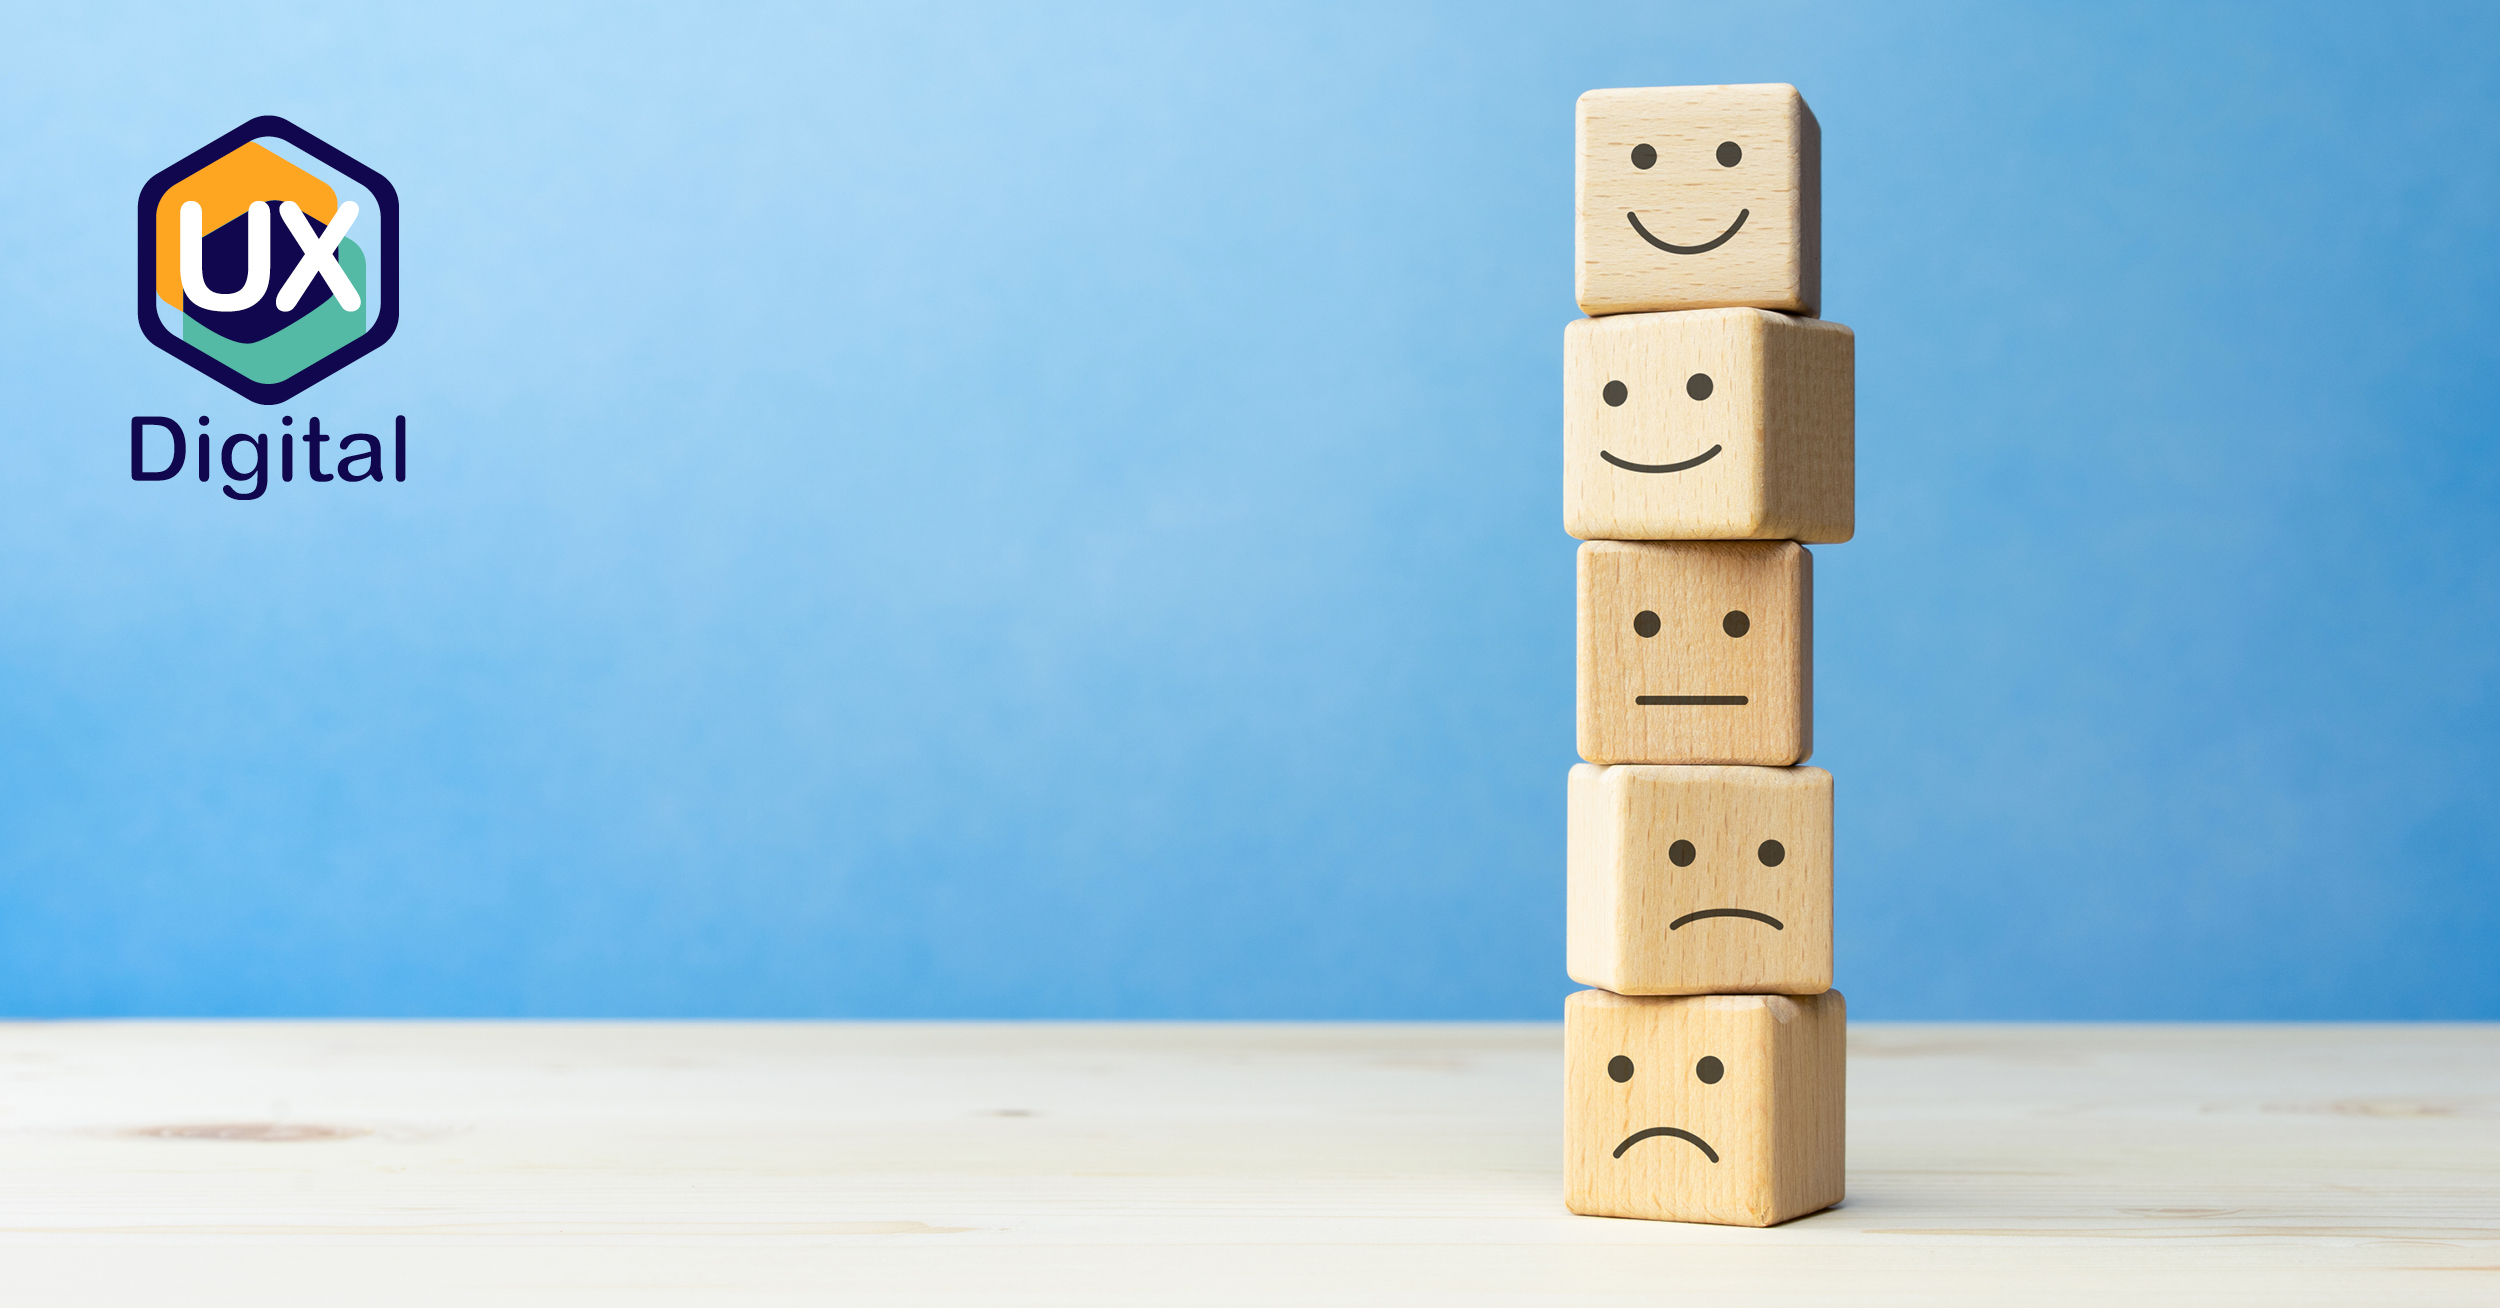 Hospitality: 3 Simple Steps to Customer Satisfaction Post-Pandemic